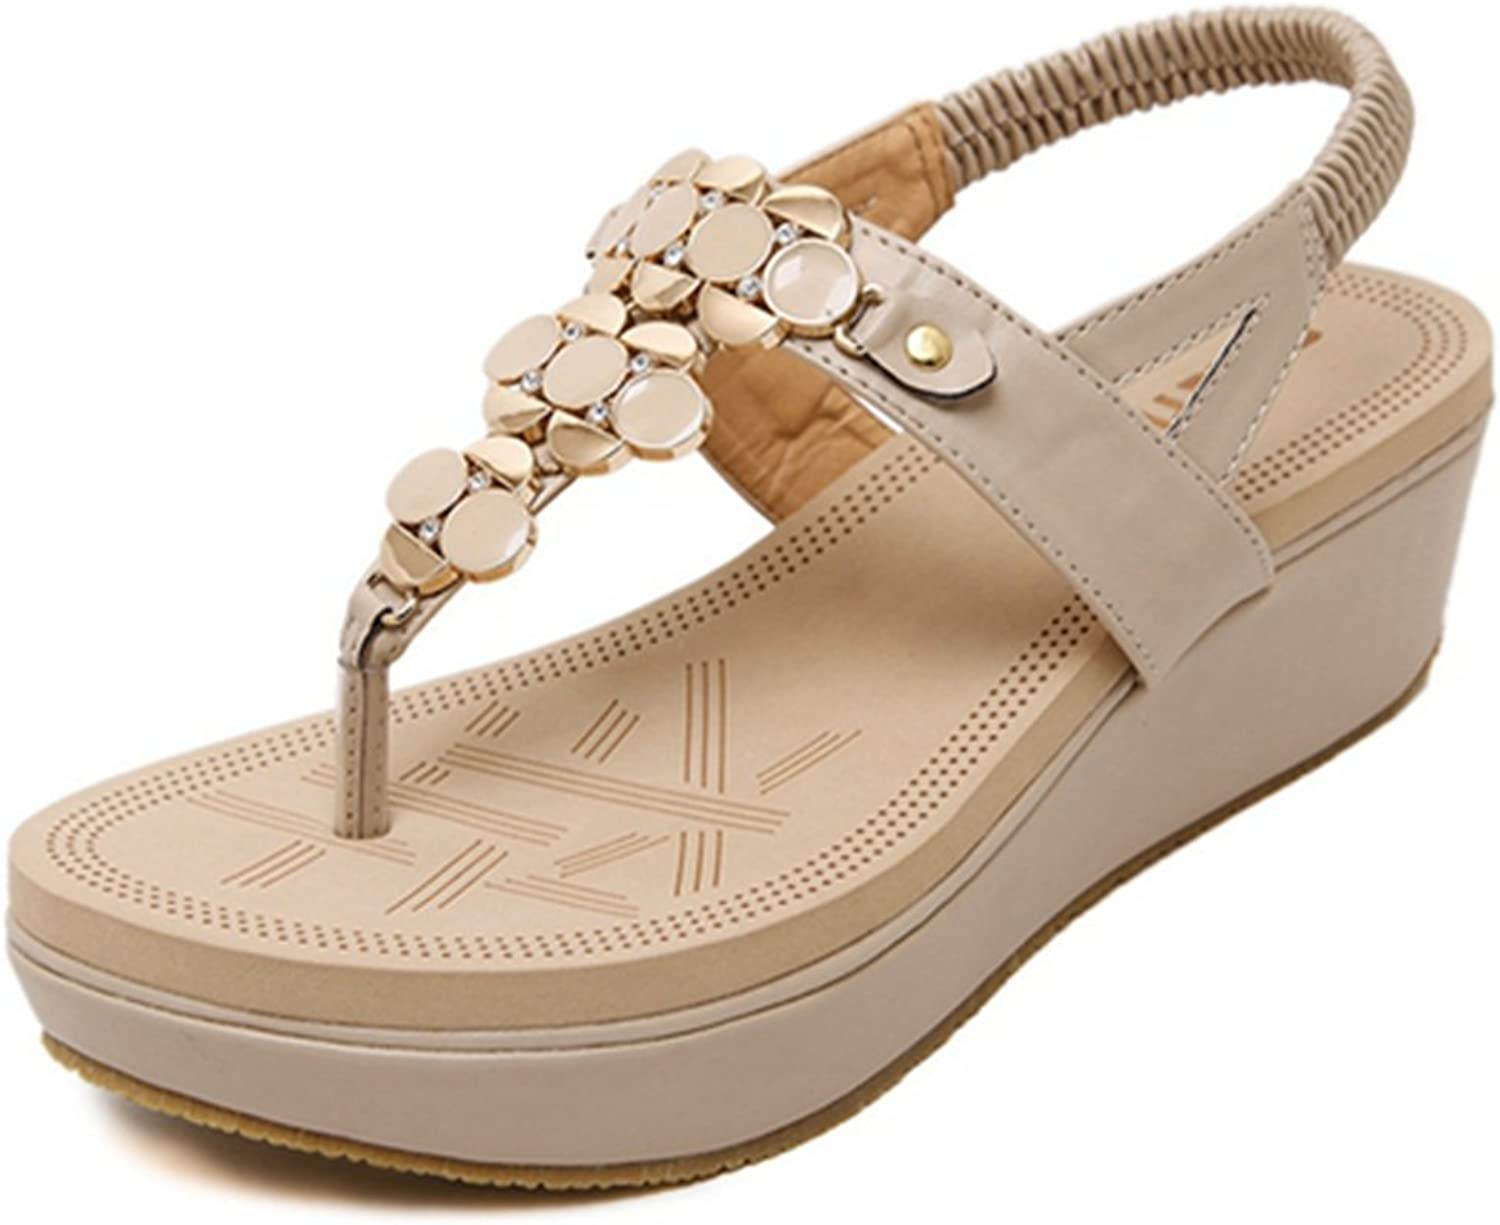 Metallic Platform Wedge Sandal for Womens Thongs Flip-Flop shoes for Grils Party Summer Beach